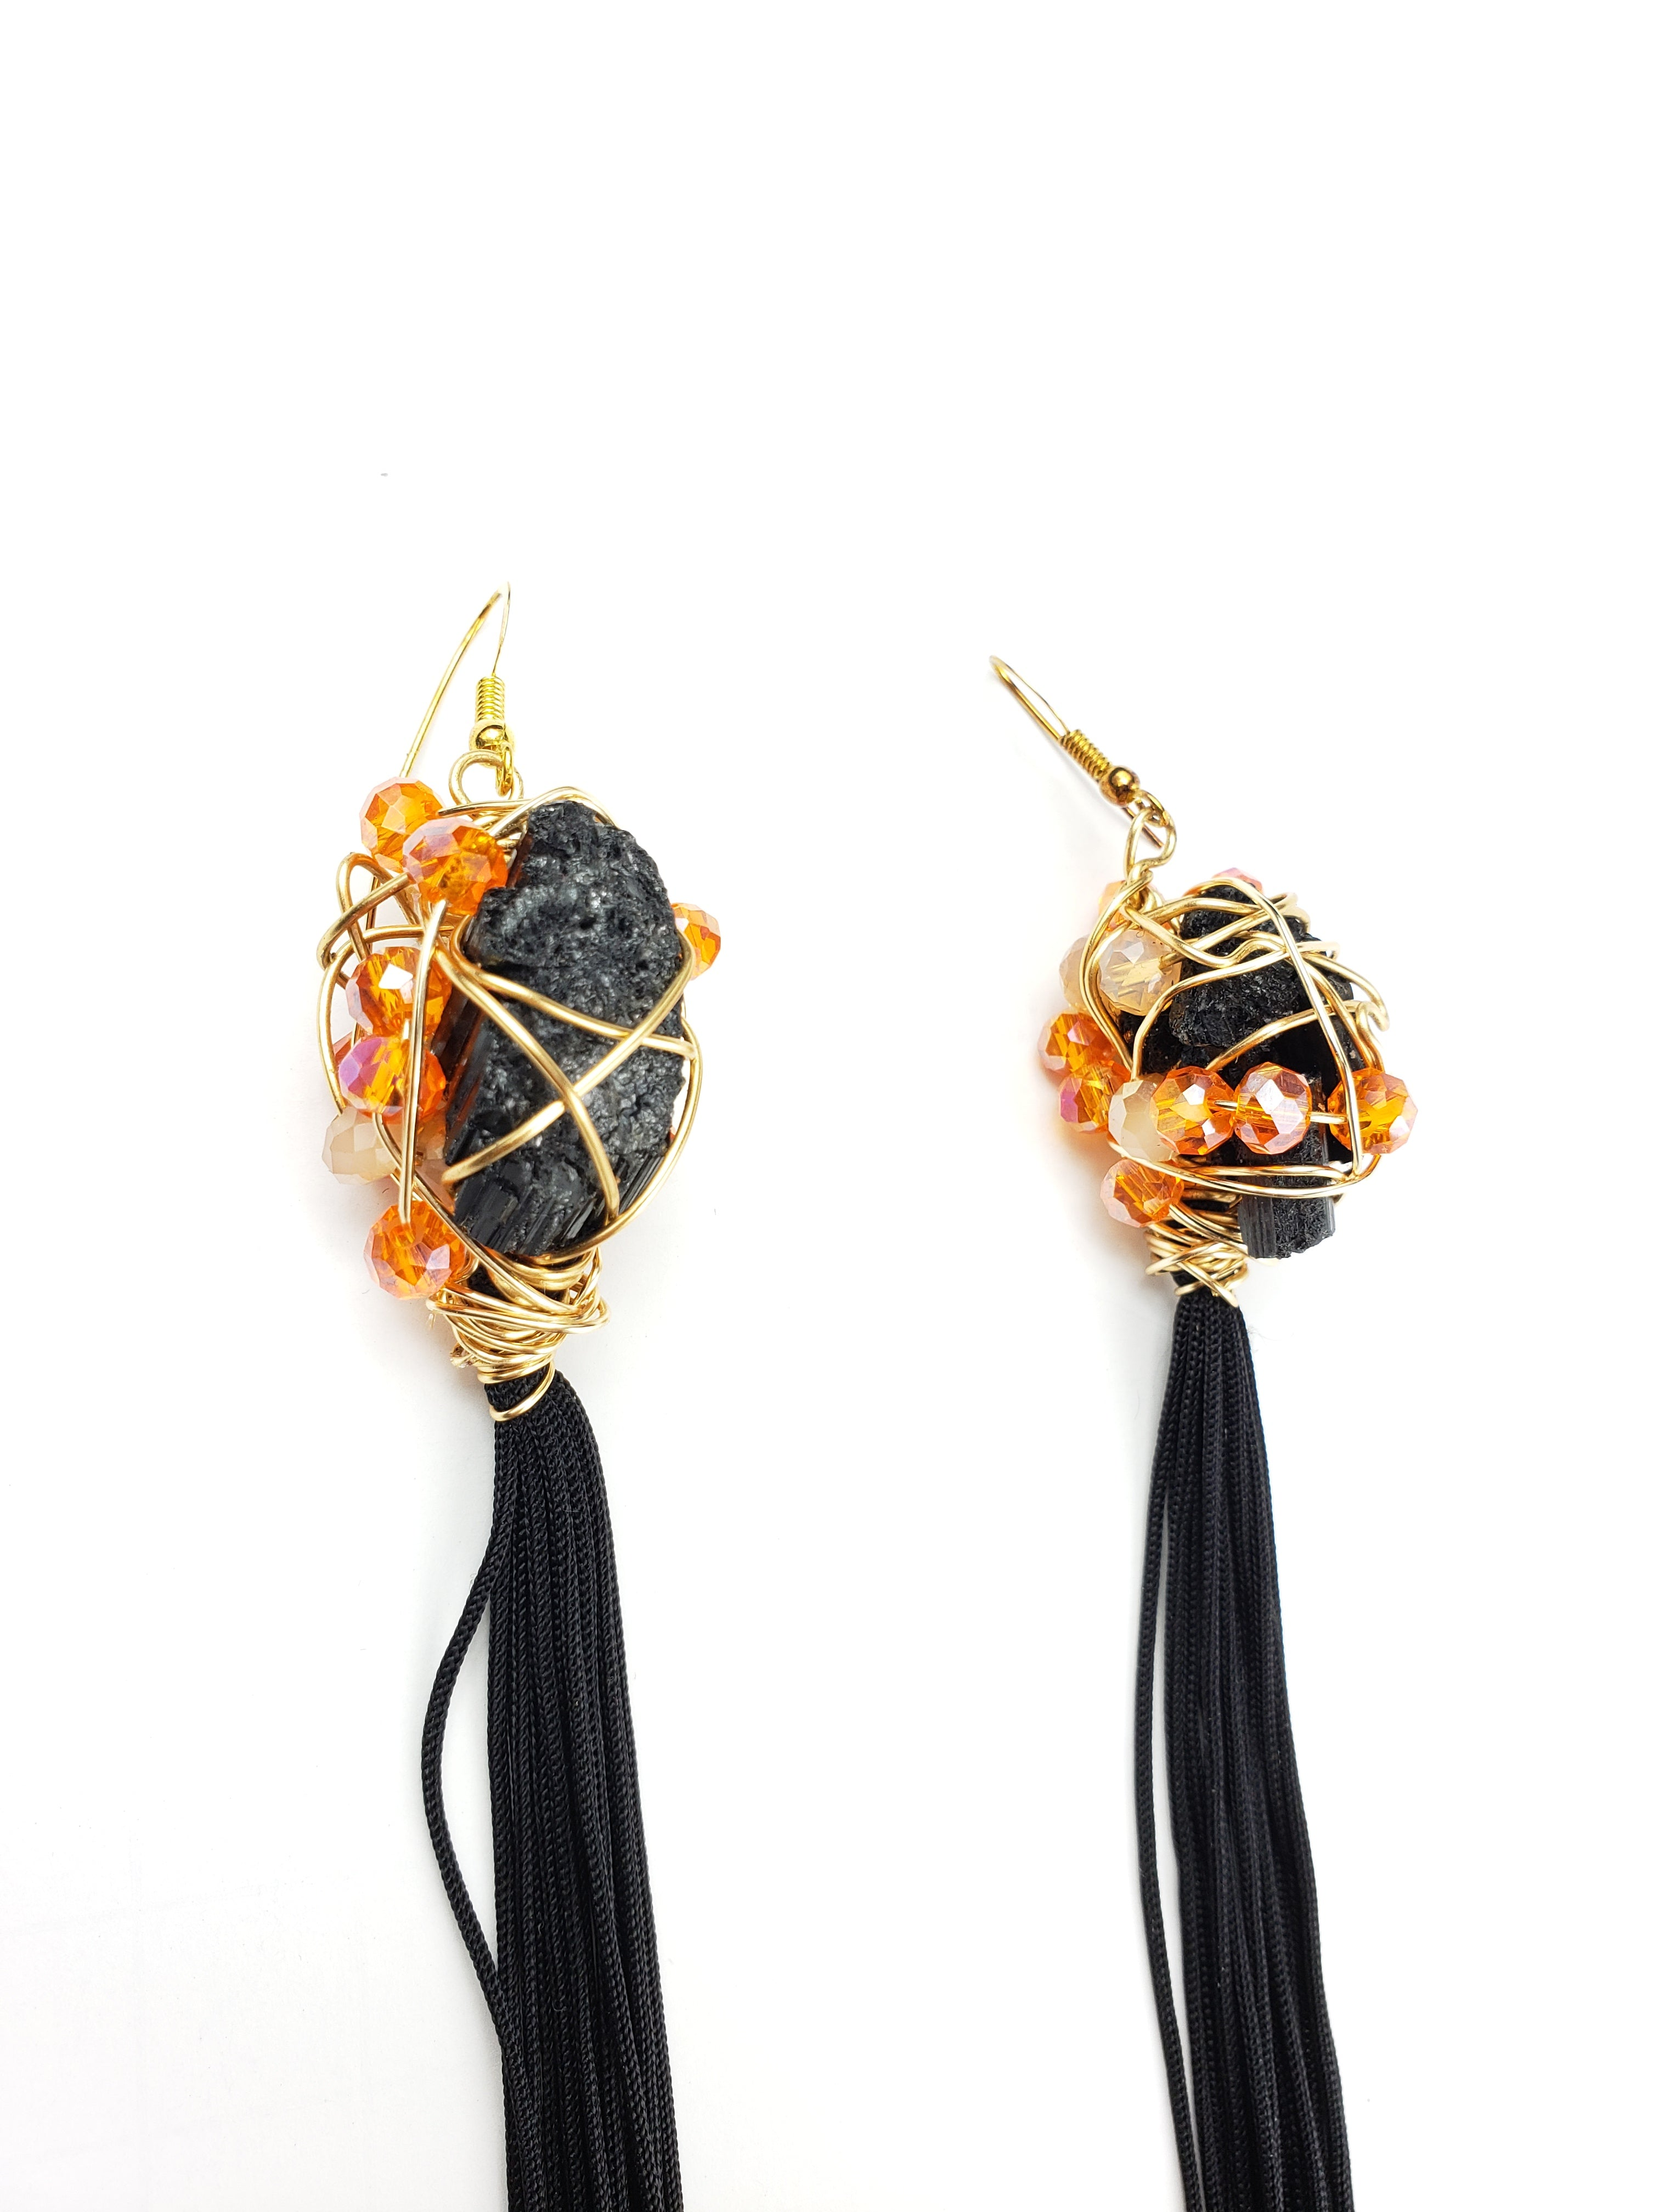 Black Tourmaline tassel earrings, one of a kind crystal jewelry